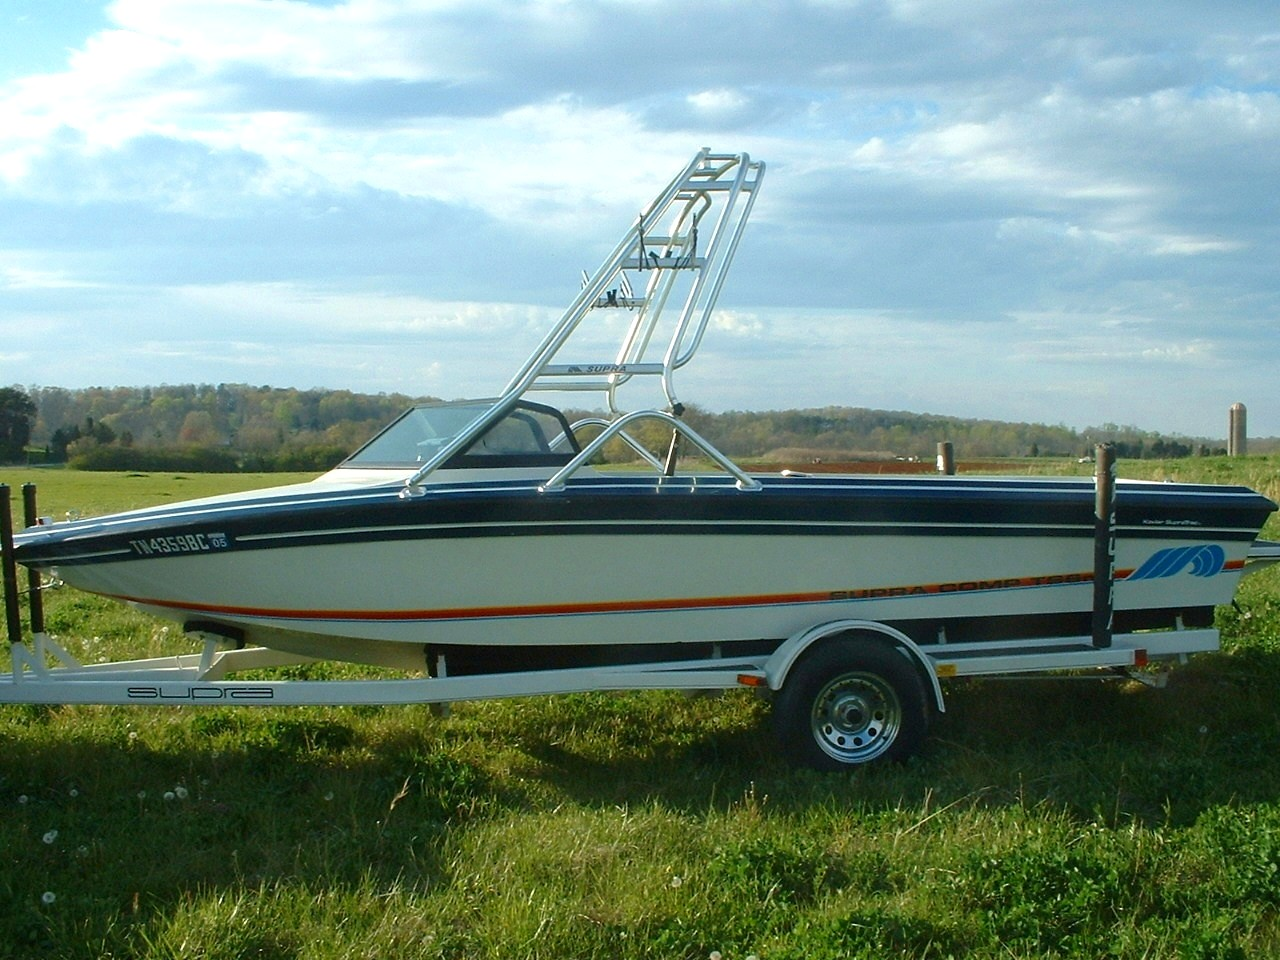 main image of 88 supra comp with new dimension wakeboard tower